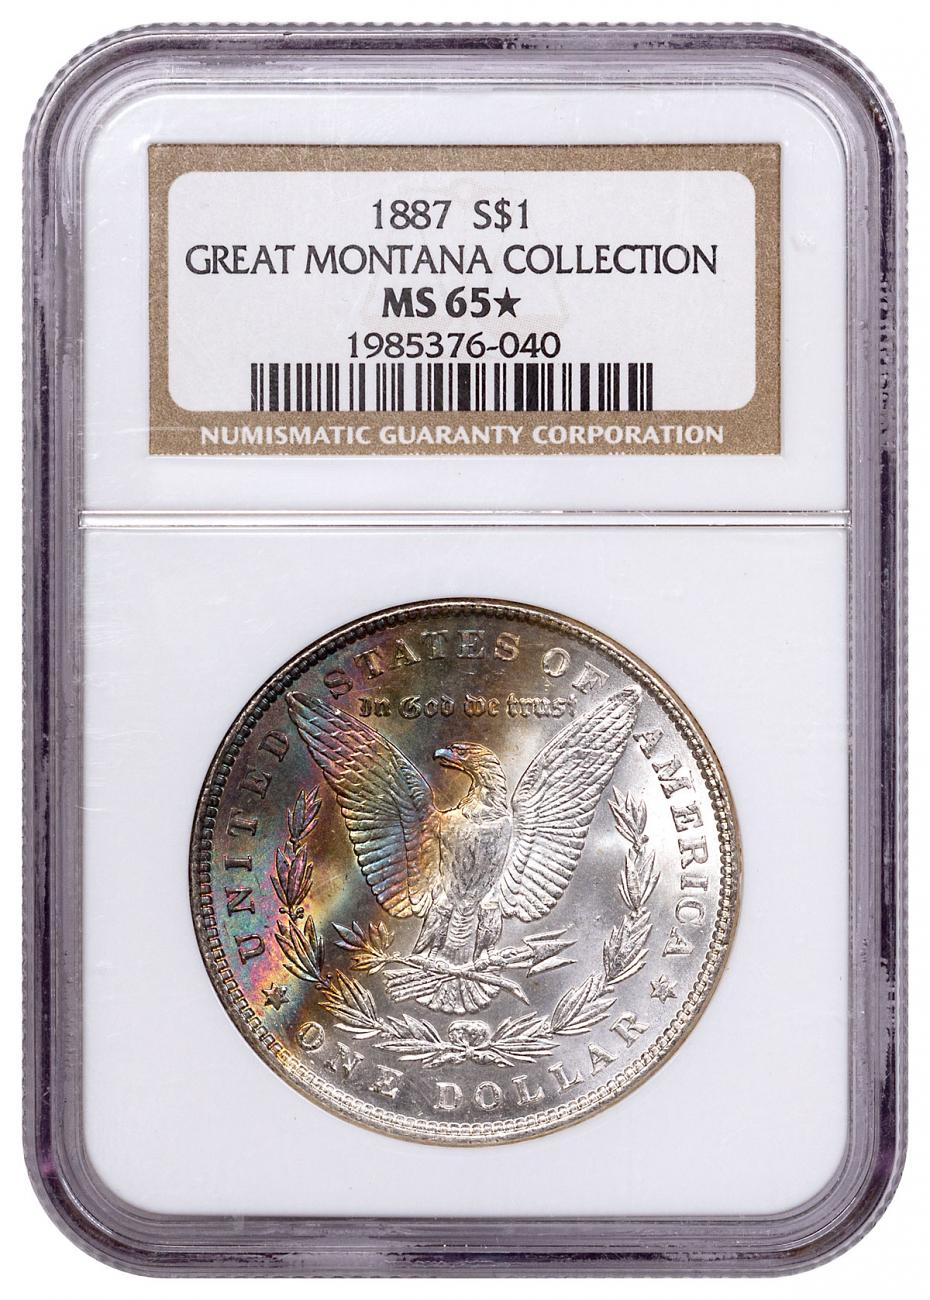 1887 Morgan Silver Dollar From the Great Montana Collection NGC MS65* Toned CPCR 6040